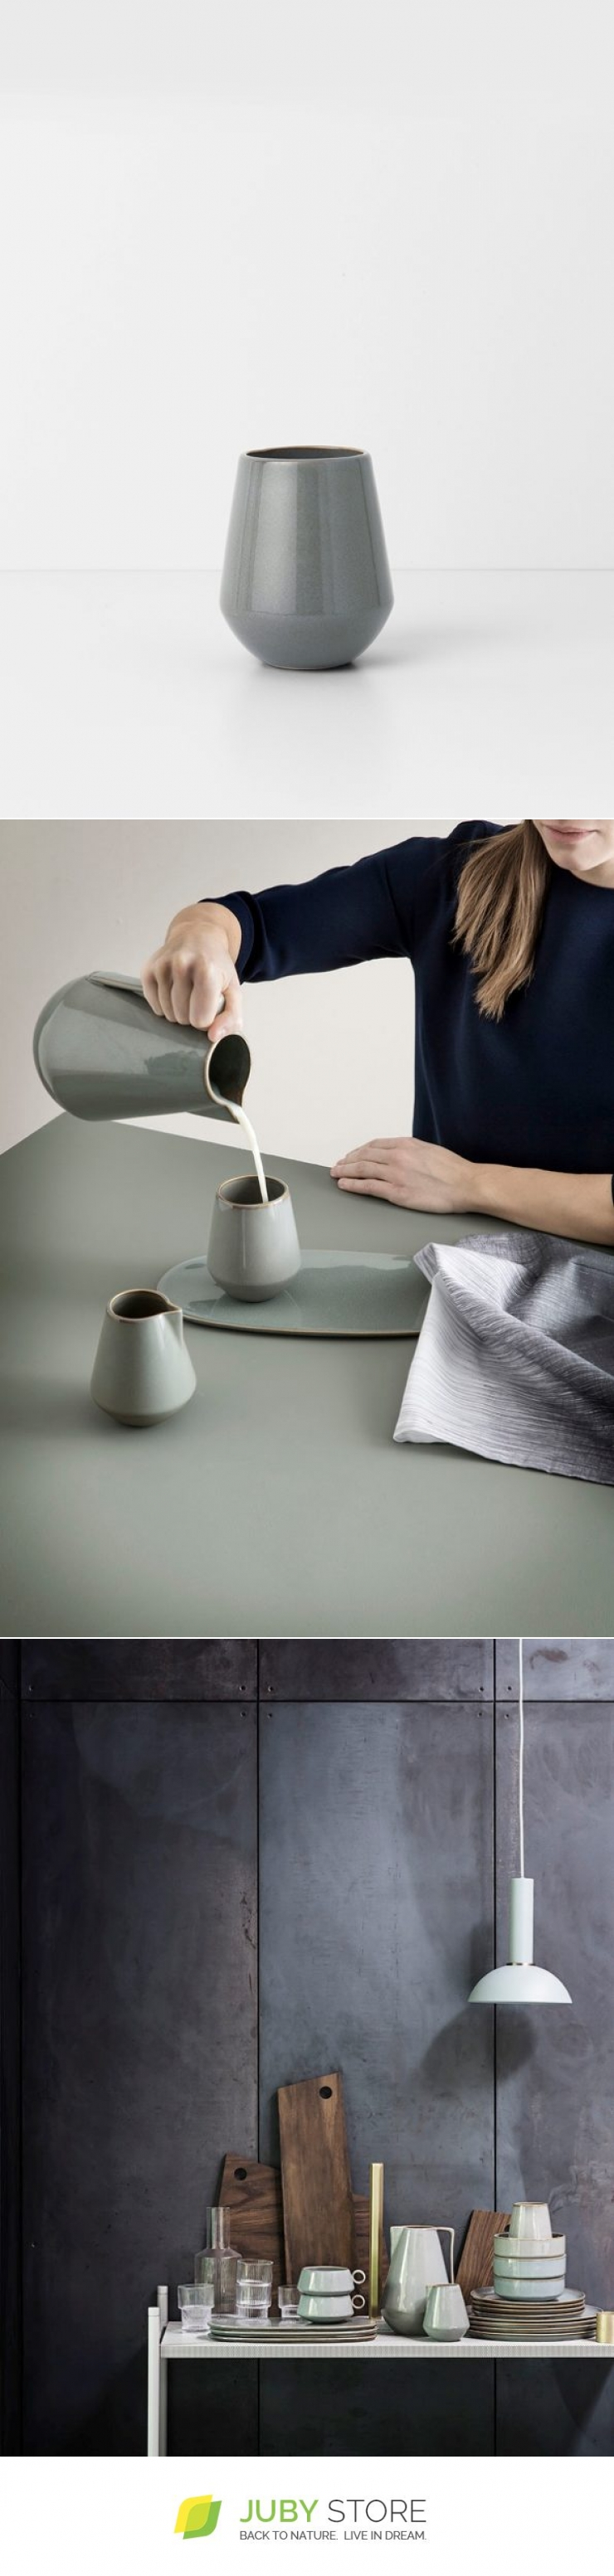 Ferm Living Neu Mug - Juby Store - created via https://pinthemall.net